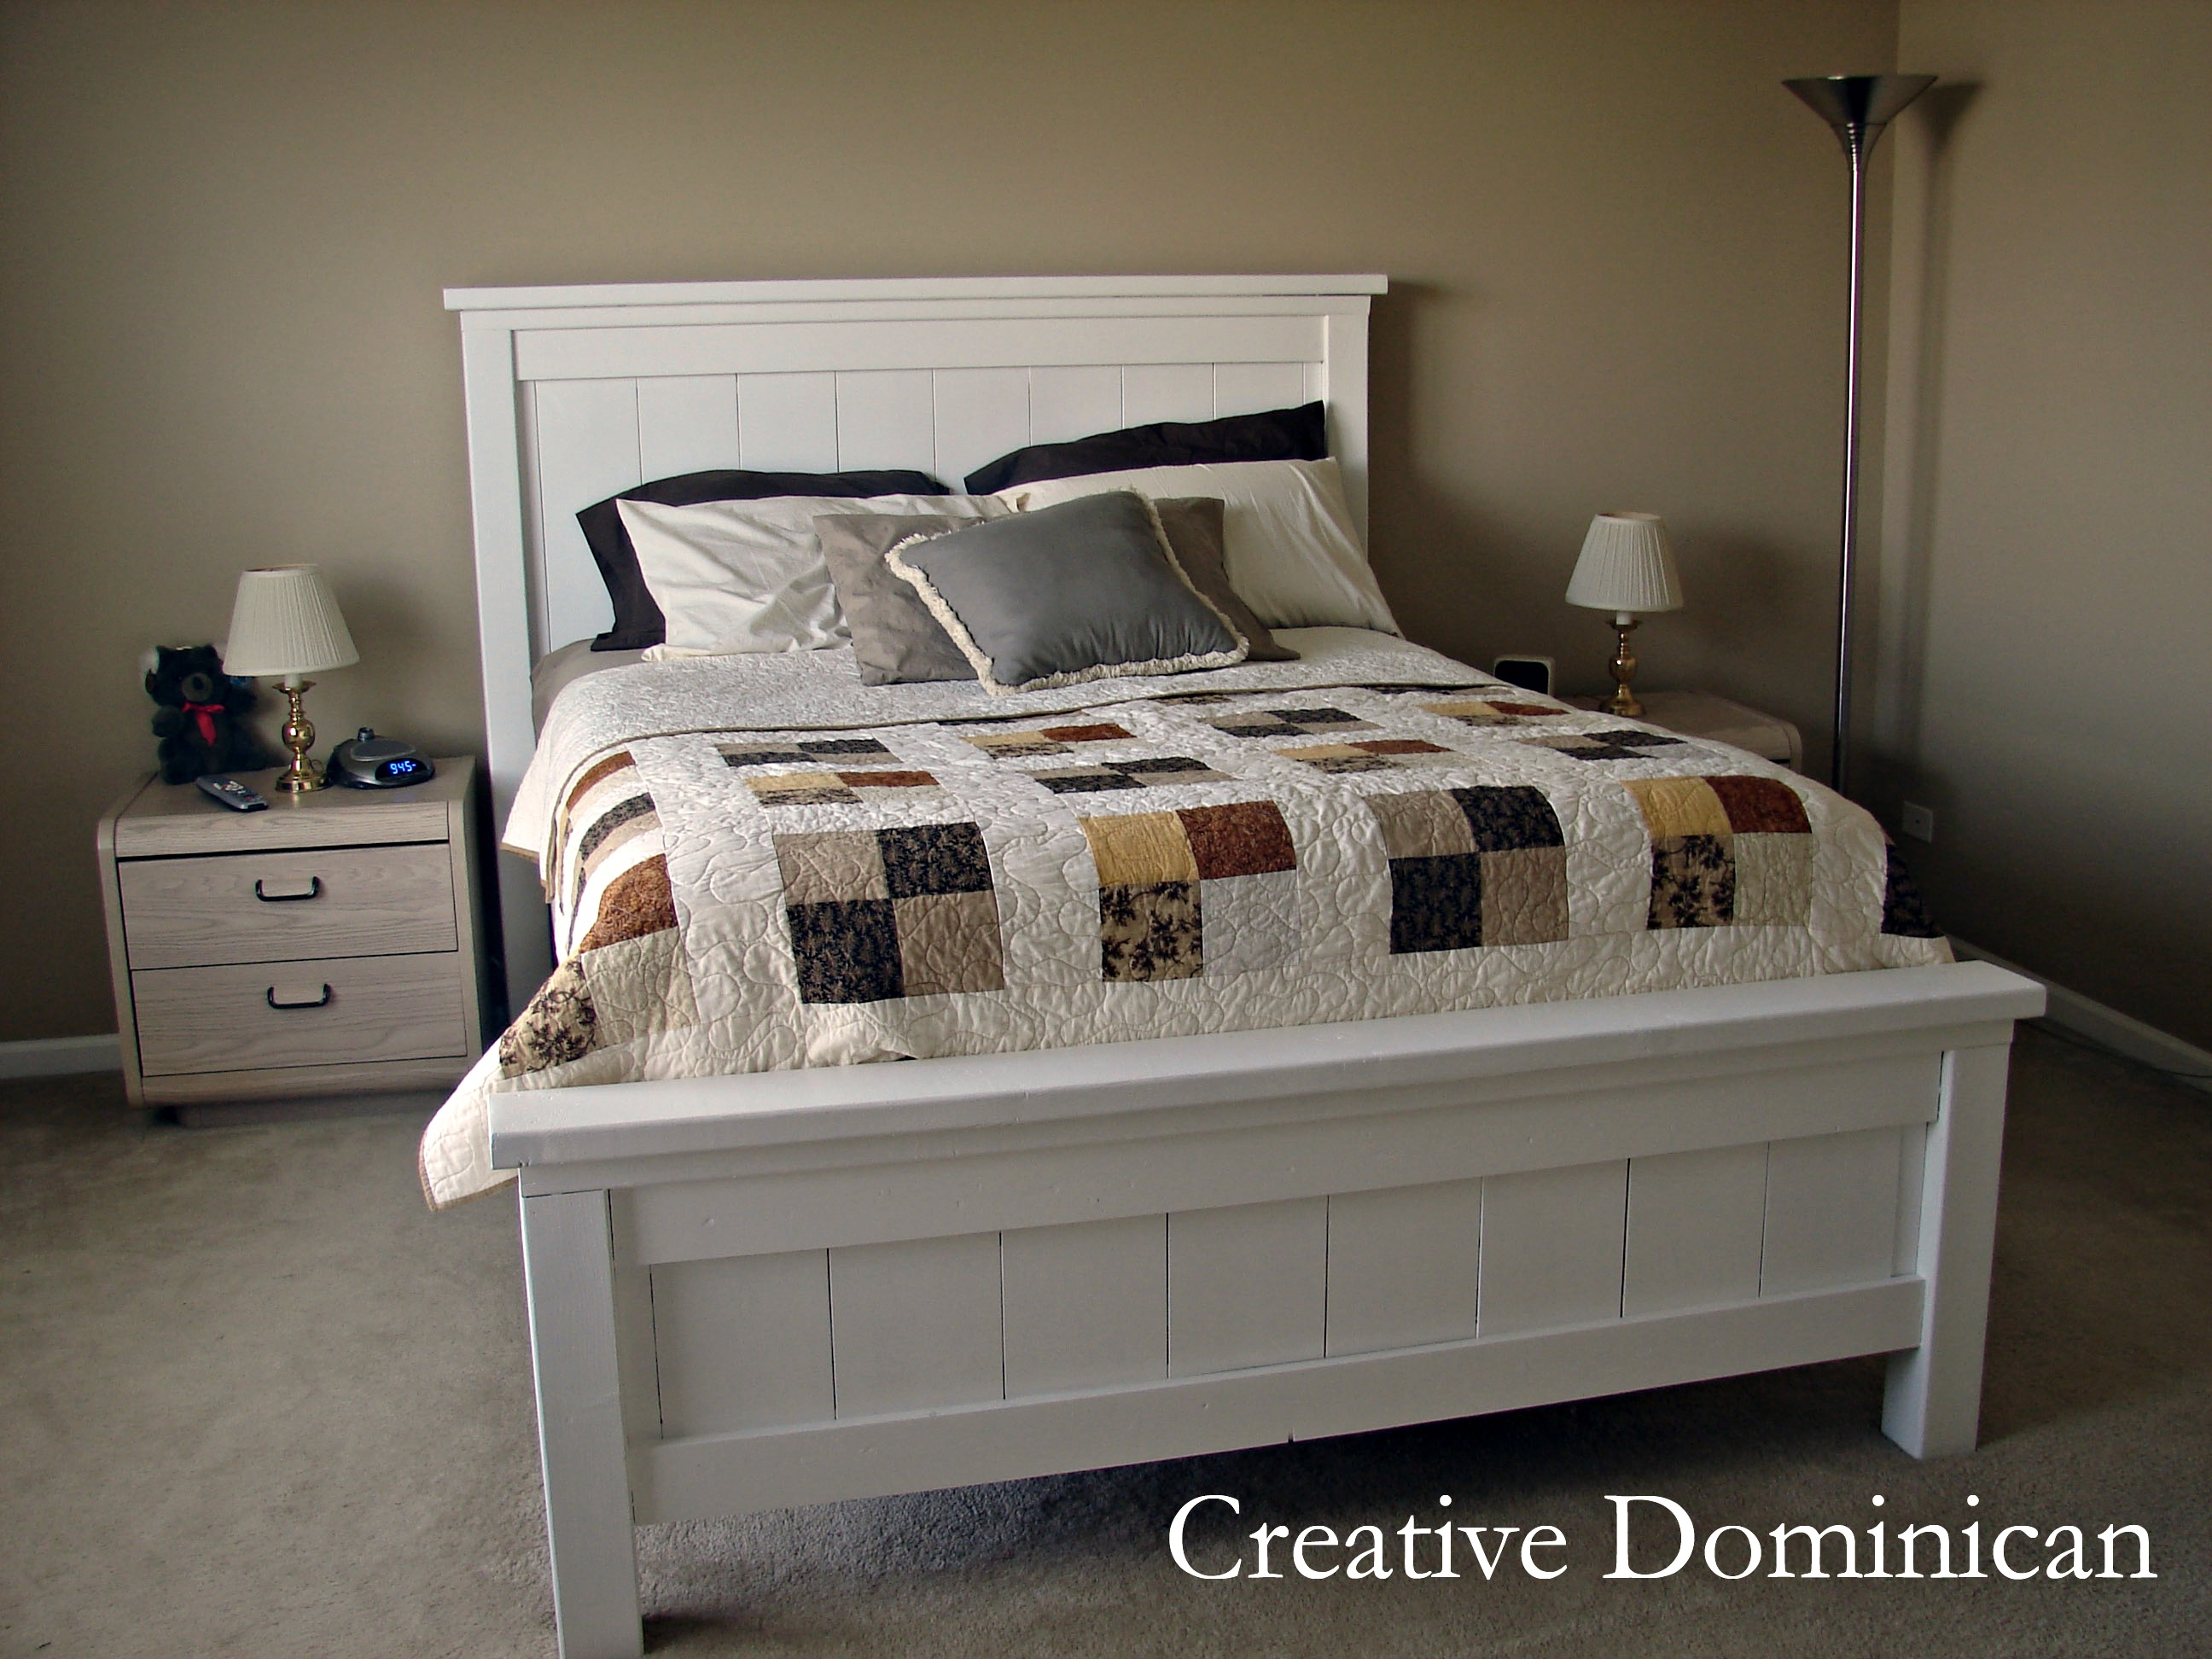 diy farmhouse bed creative dominican. Black Bedroom Furniture Sets. Home Design Ideas